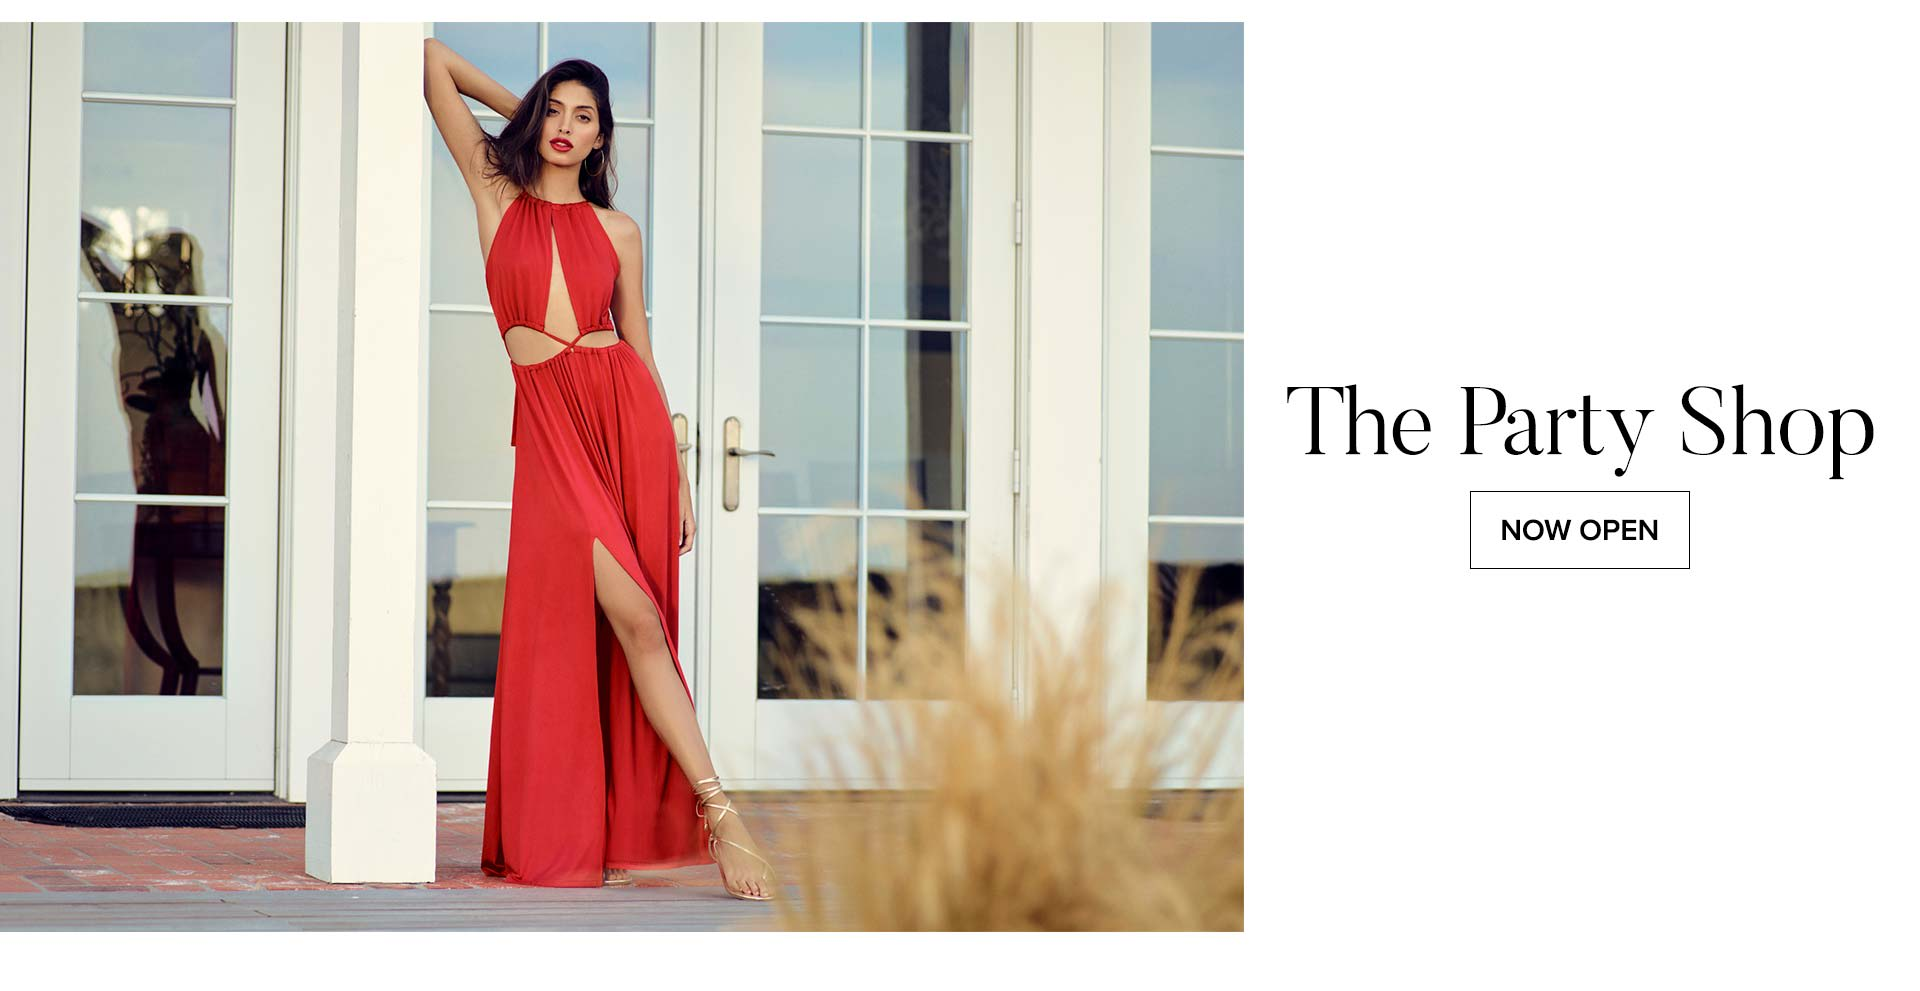 The Party Shop- Elegant Formal Dresses, Party Dresses, Evening Dresses, Bodycon Dresses and Gowns.